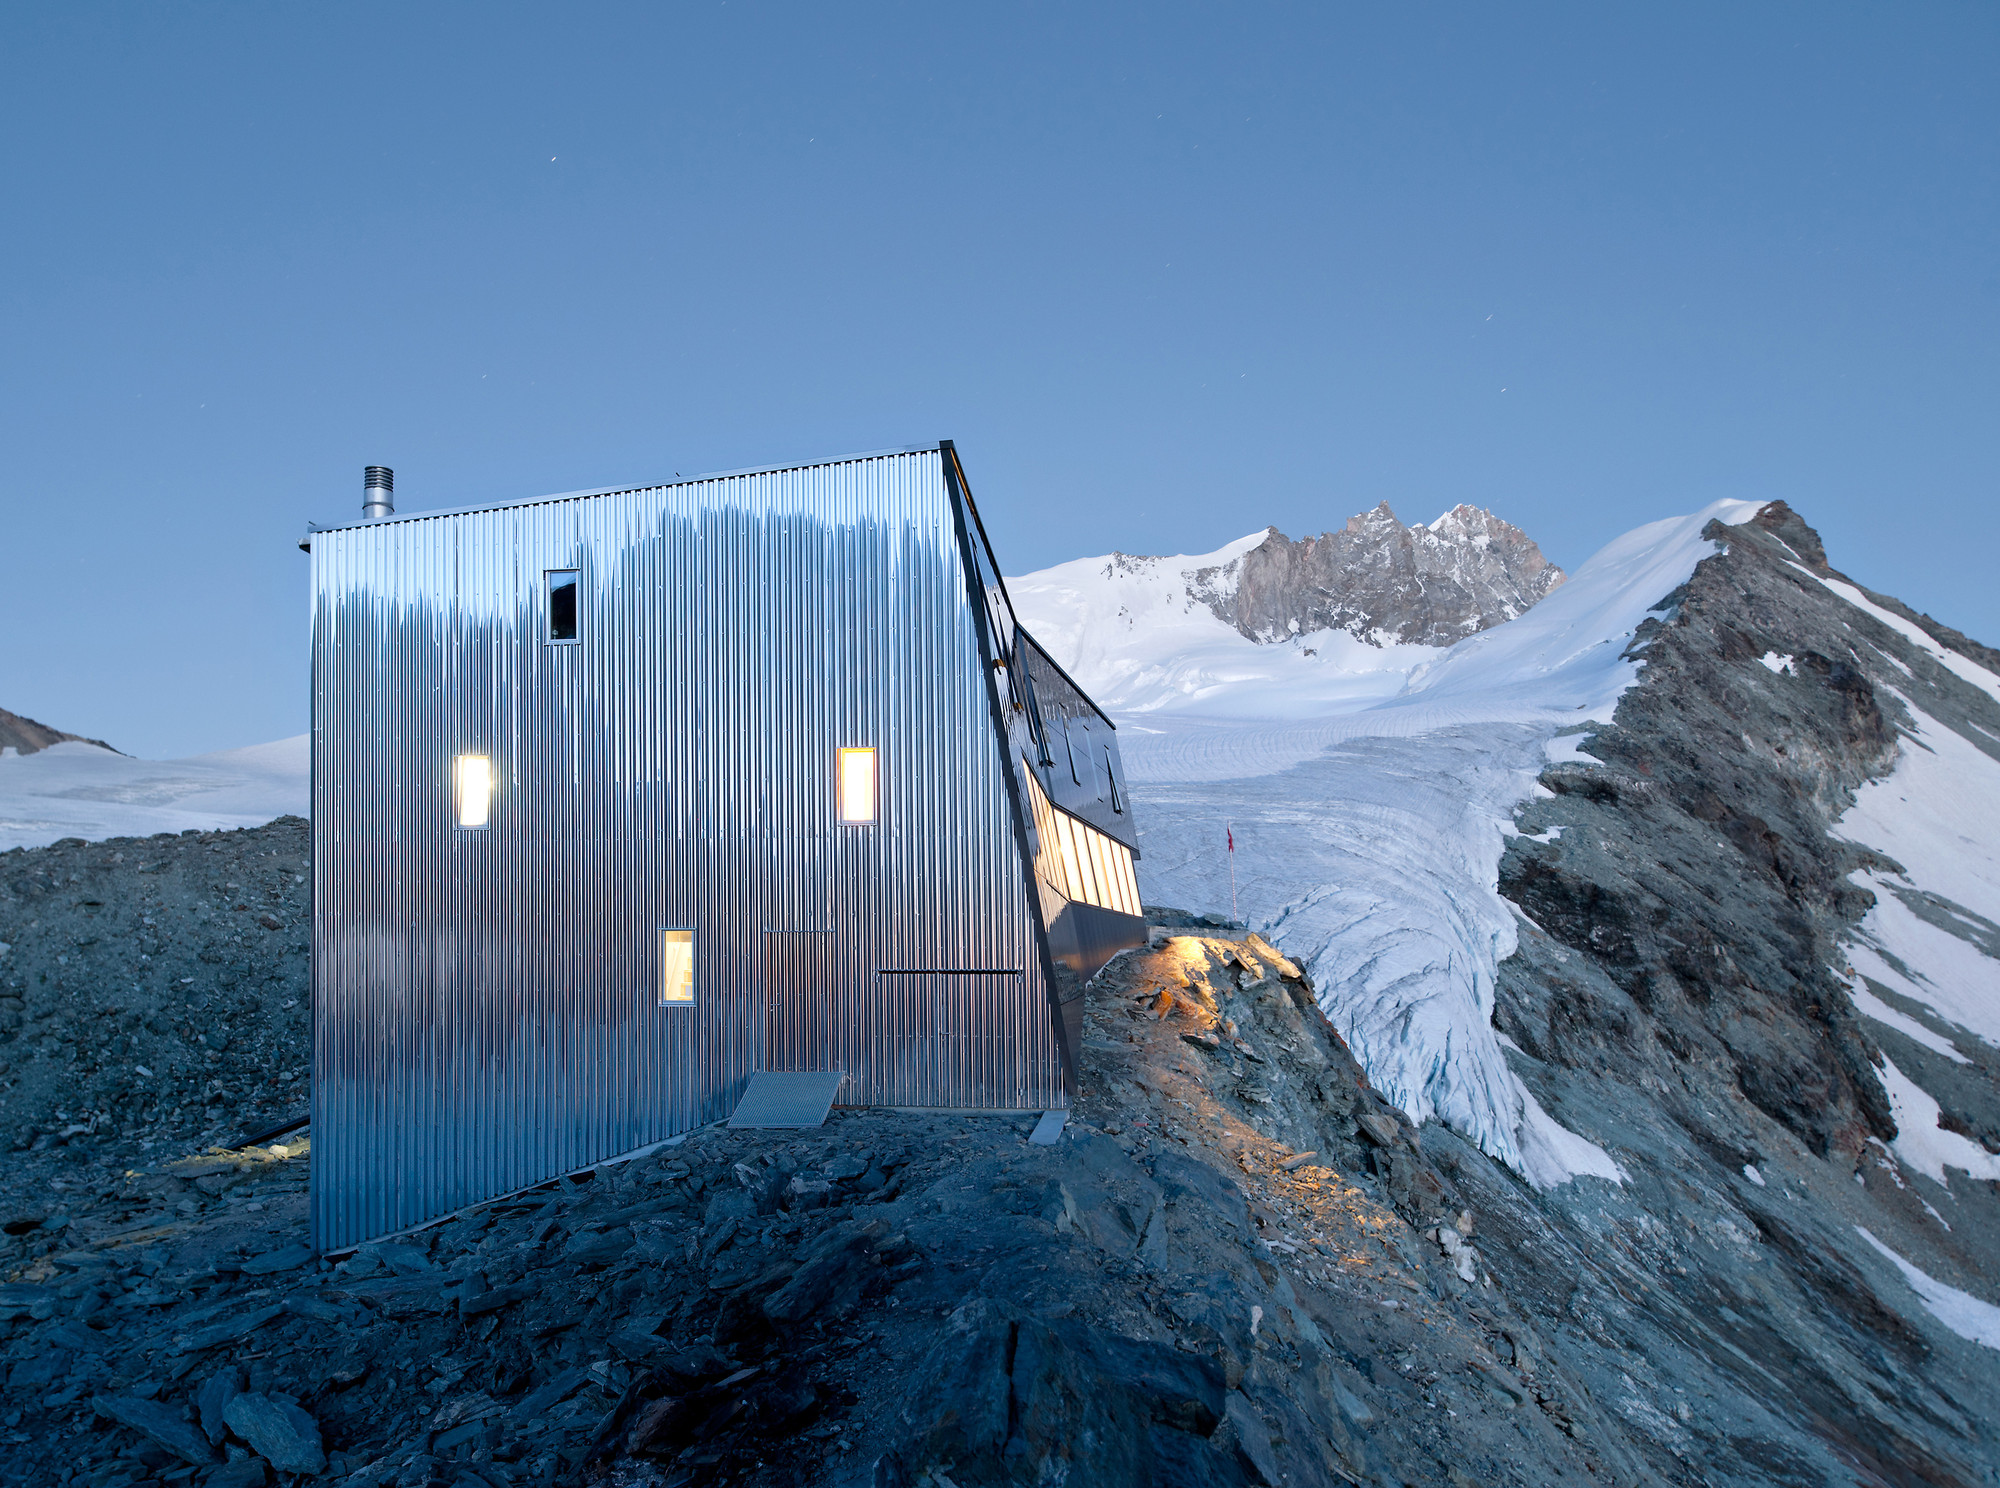 New Mountain Hut At Tracuit / Savioz Fabrizzi Architectes, © Thomas Jantscher